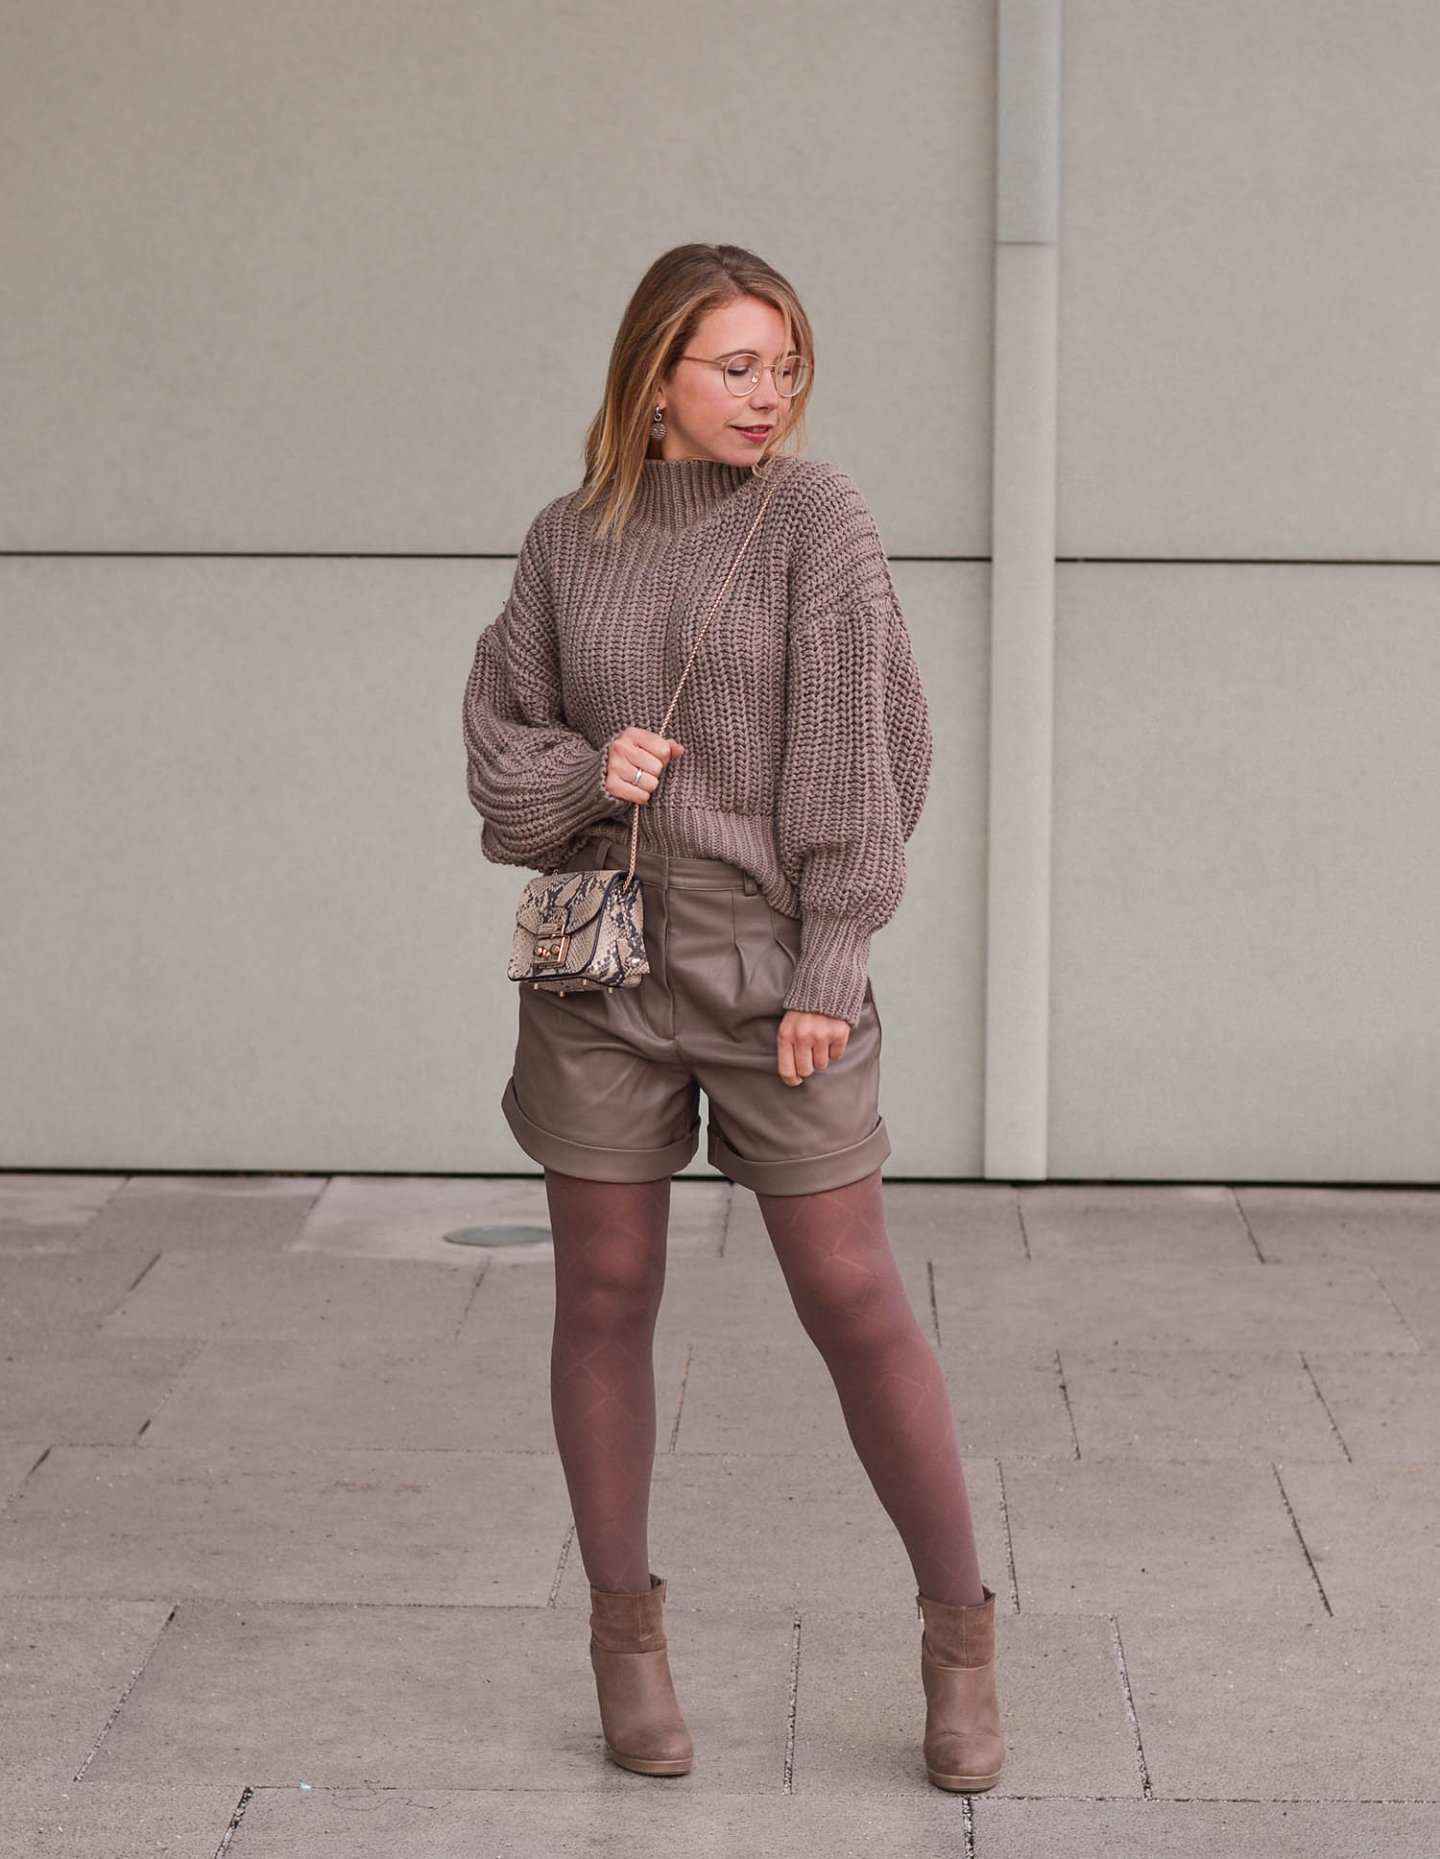 Monochromatic winter outfit